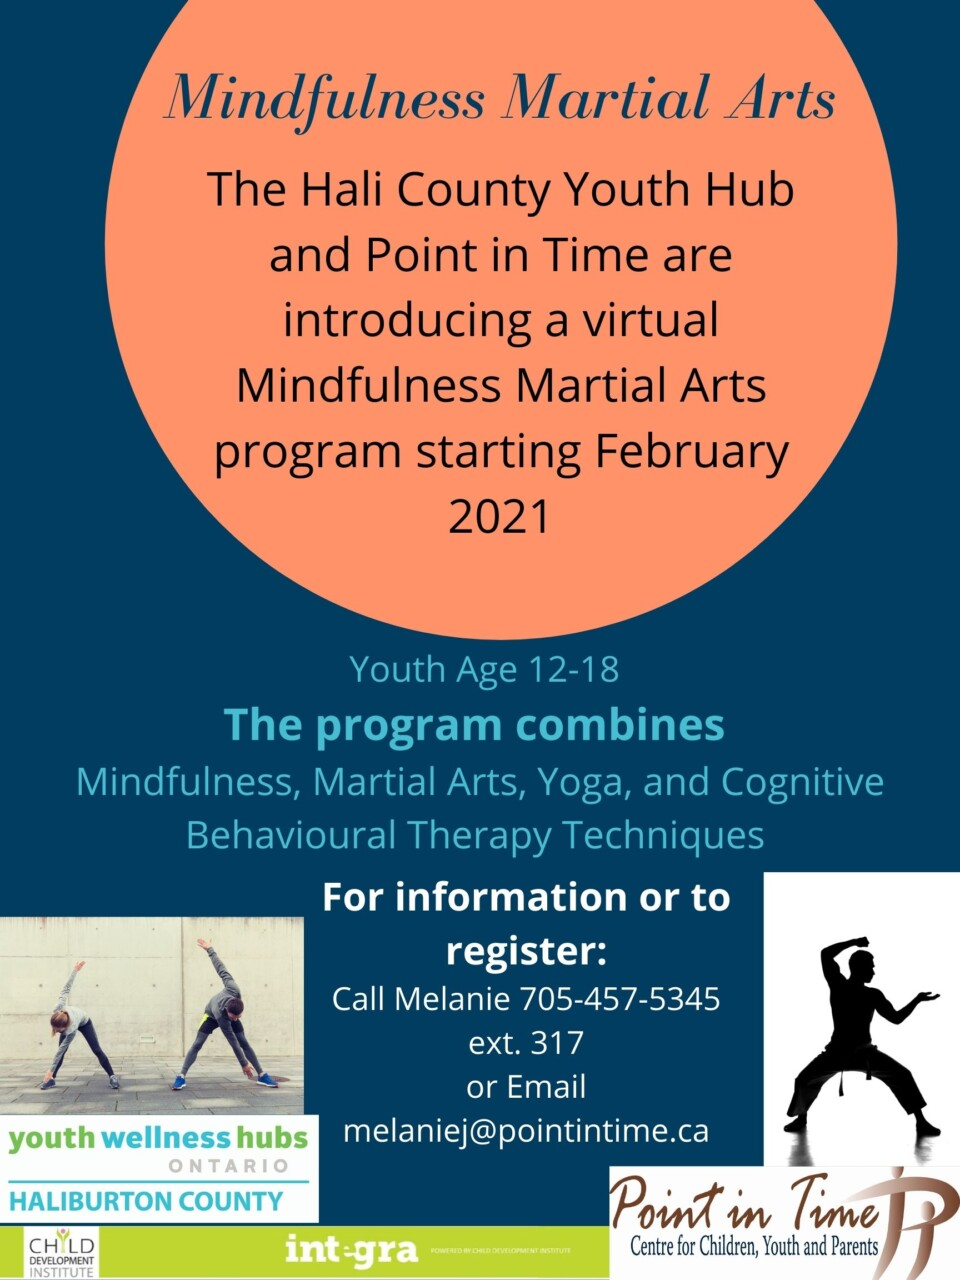 Mindfulness Martial Arts Program - Youth Age 12-18